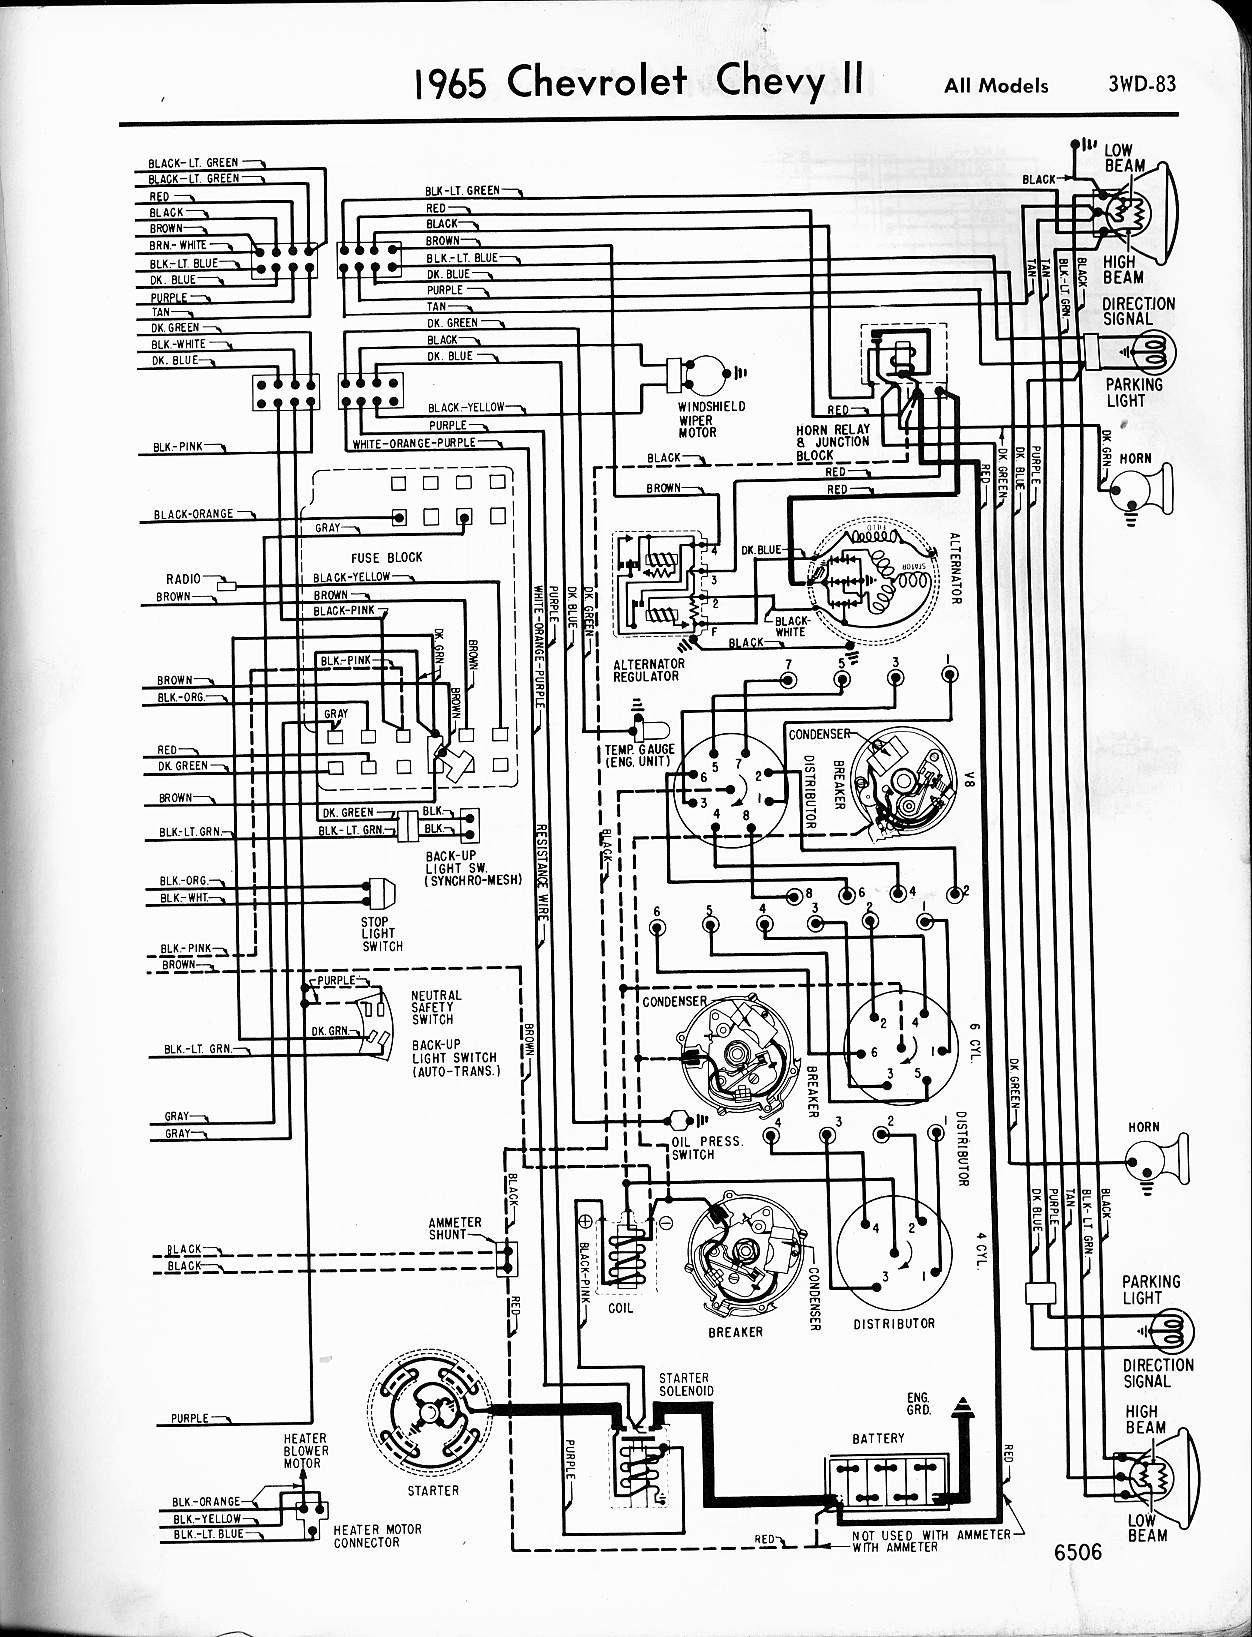 2008 Chevy Impala Wiring Diagram 1966 Chevrolet Impala Wiring Diagram Trusted Wiring Diagrams • Of 2008 Chevy Impala Wiring Diagram